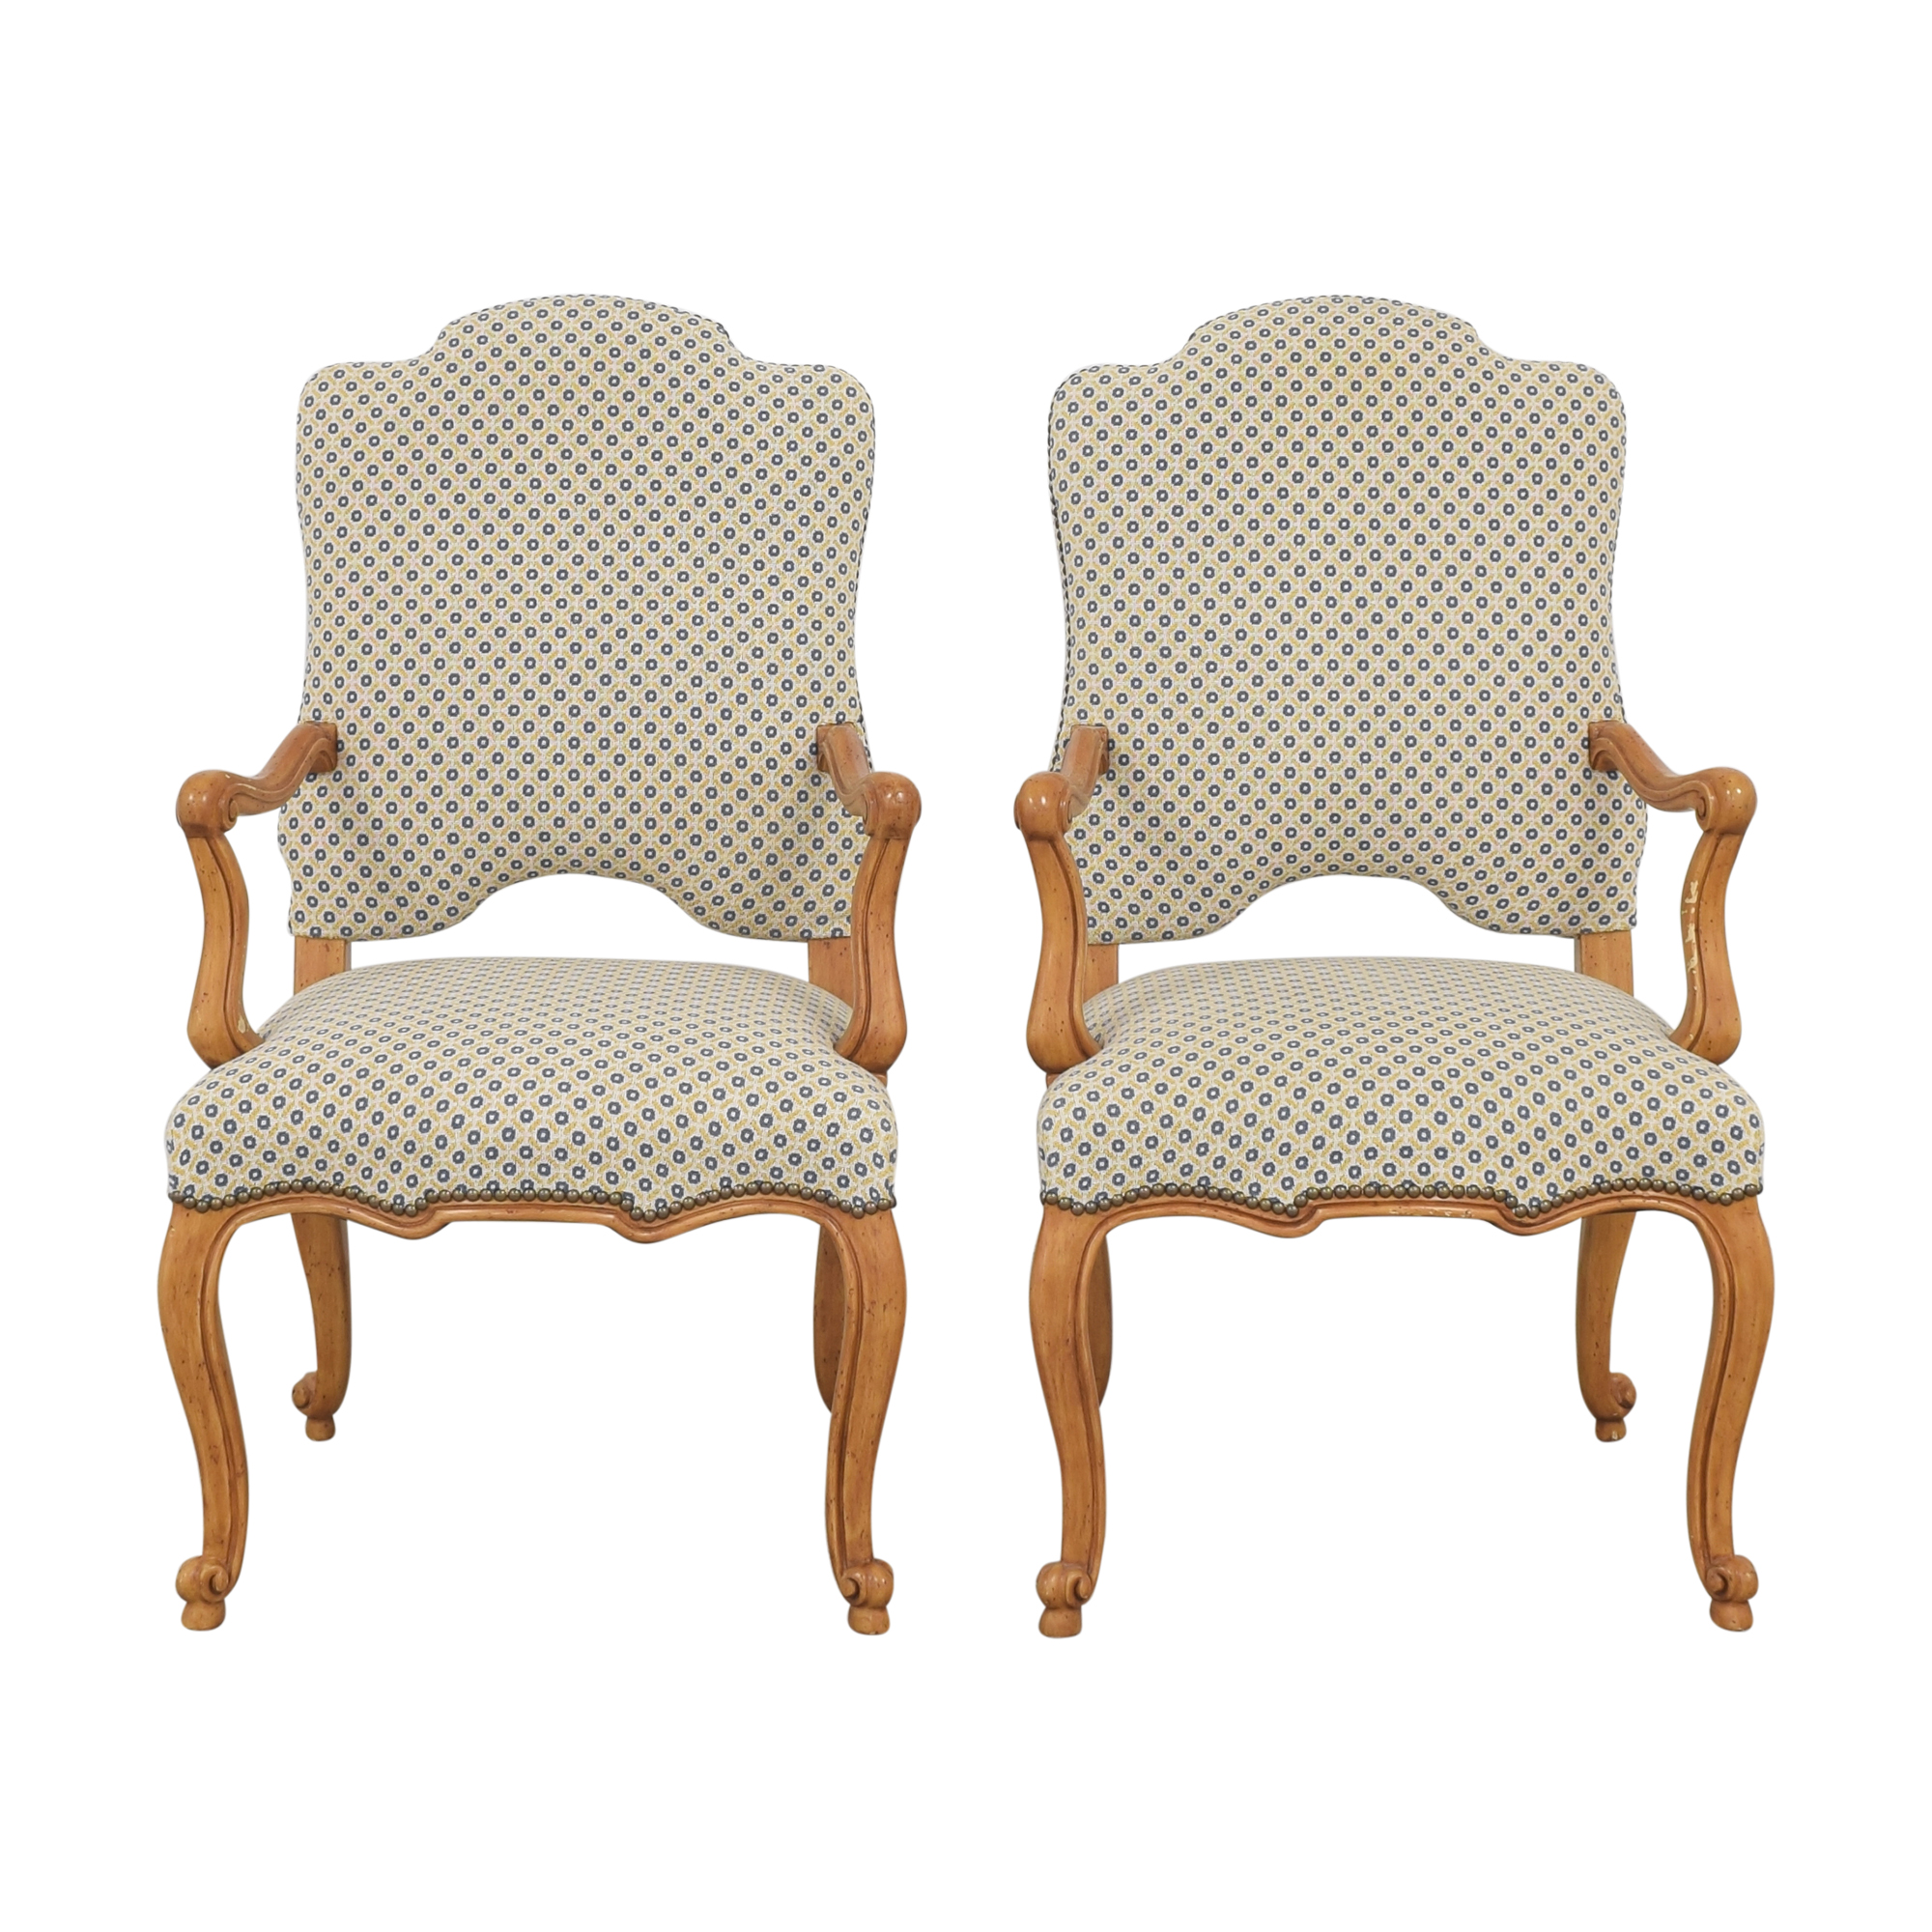 Minton-Spidell Minton-Spidell Regence Dining Chairs used